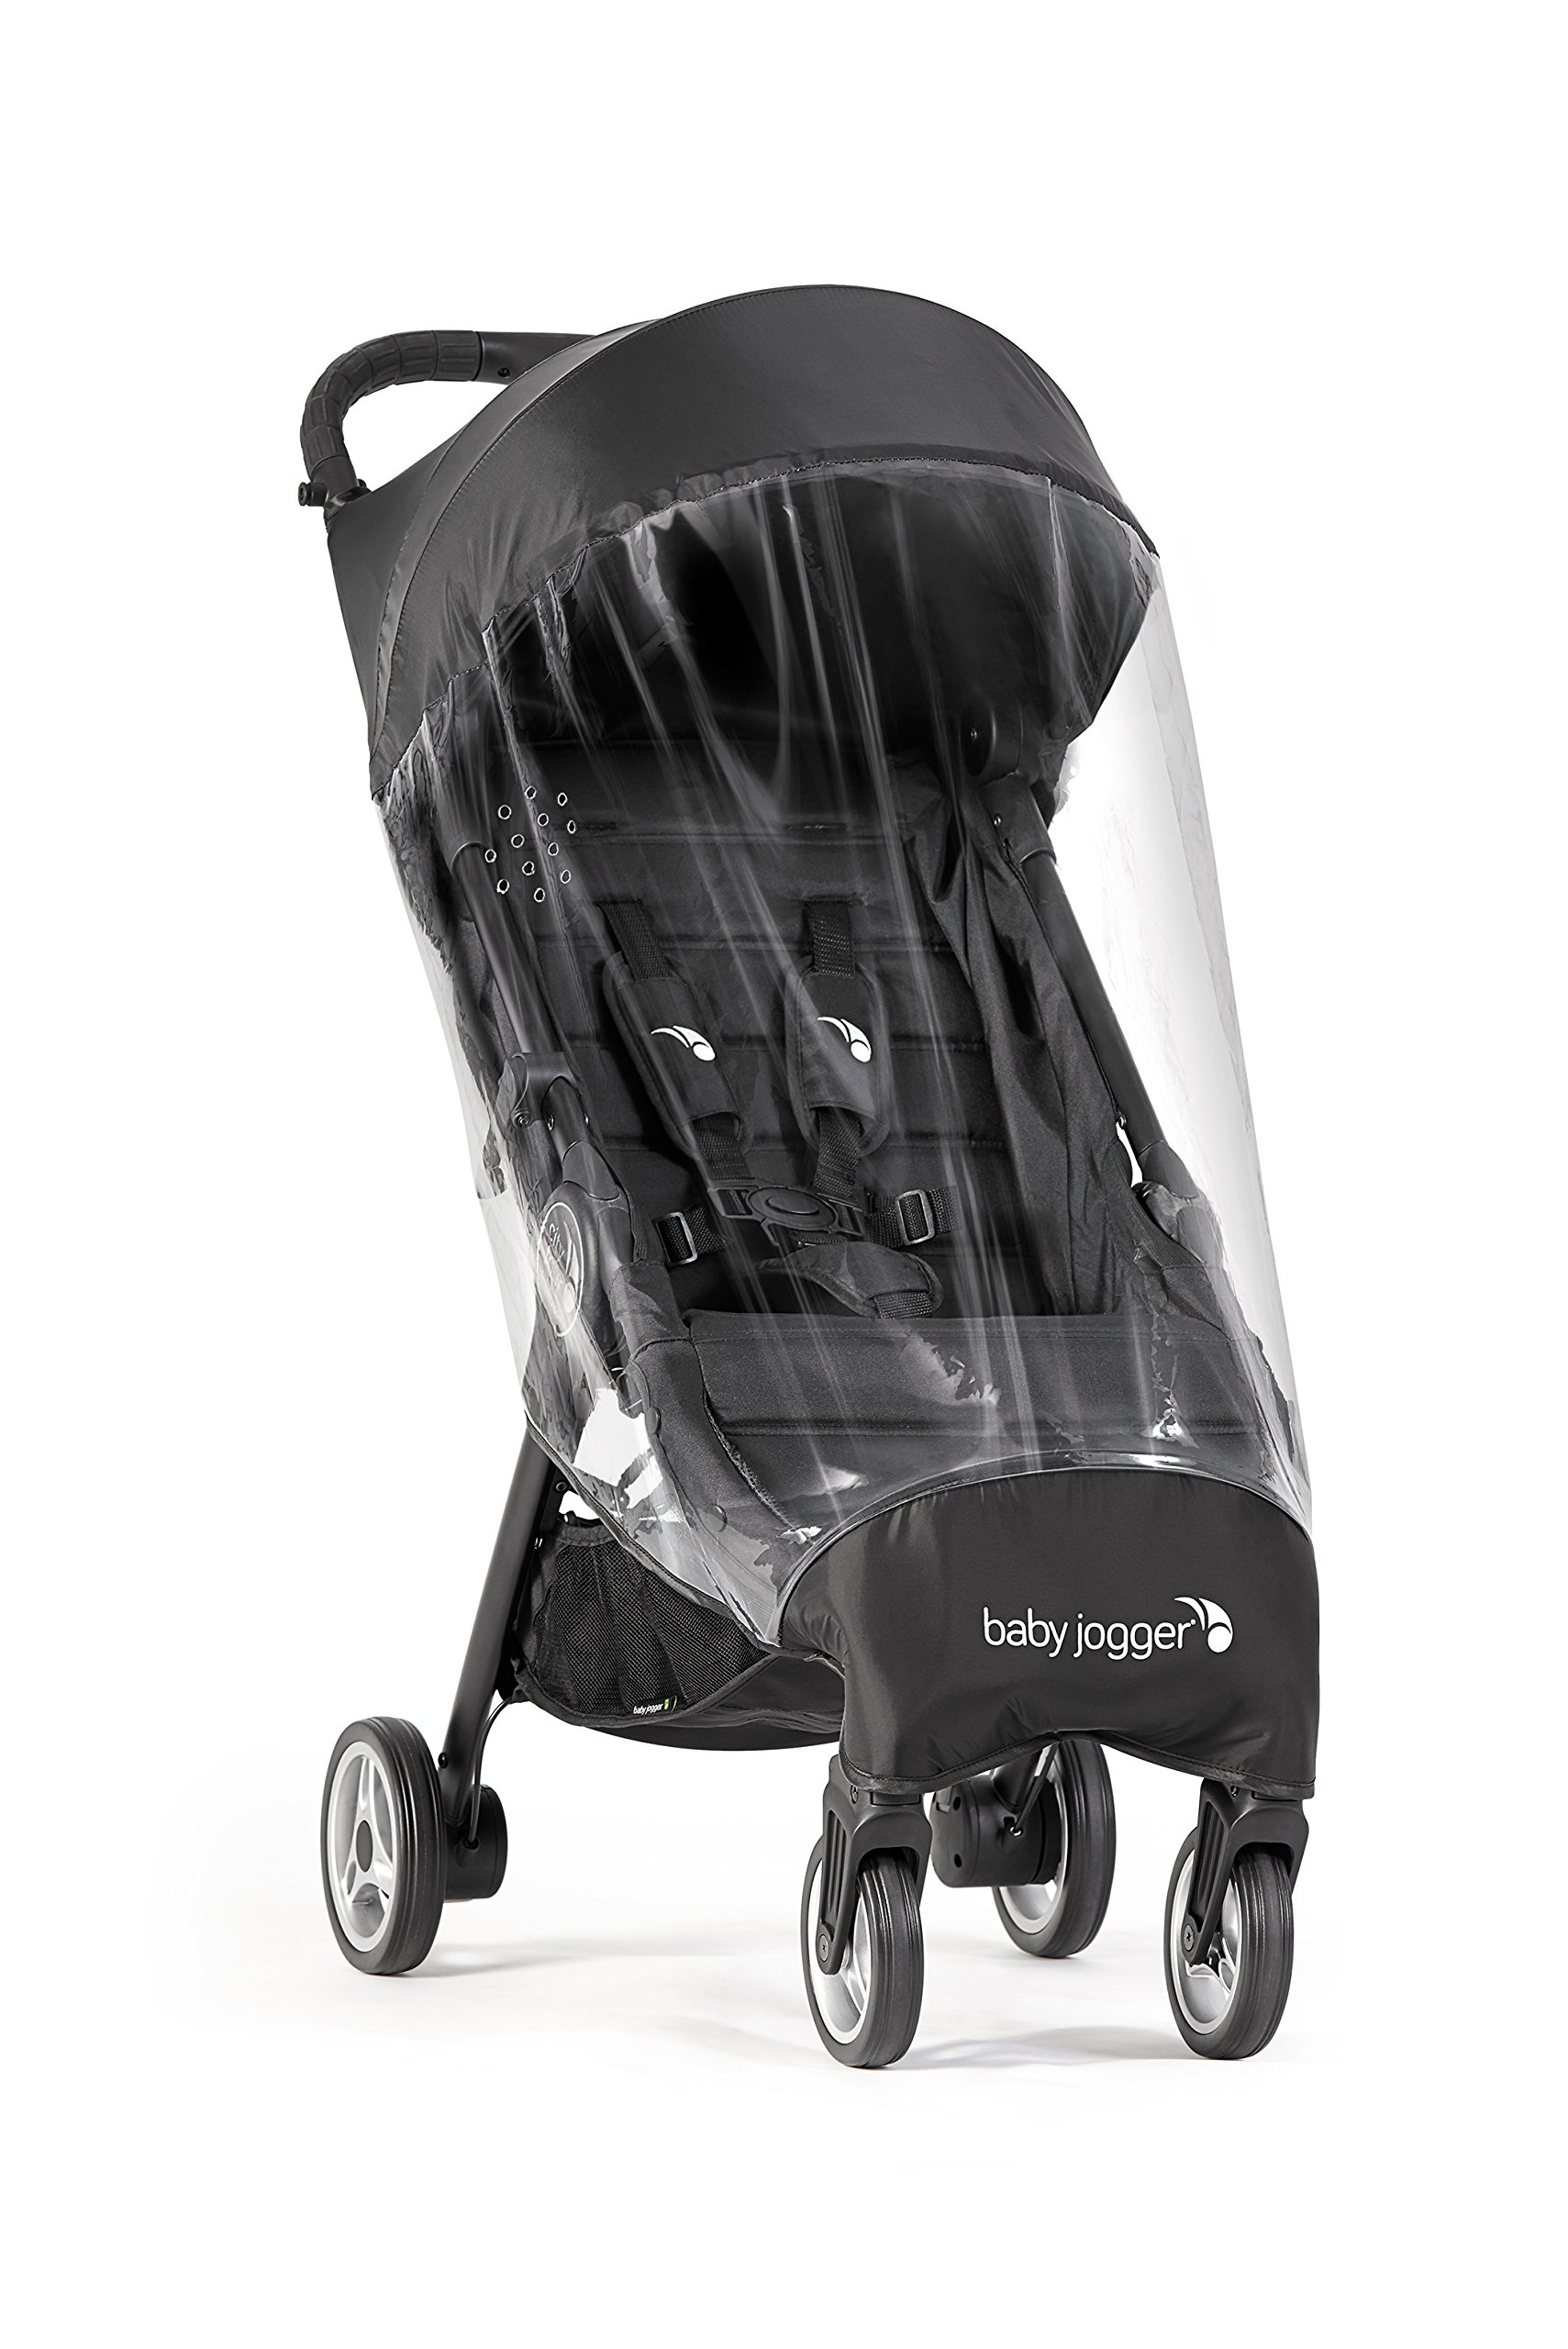 Baby Jogger Weather Shield, City Tour by Baby Jogger